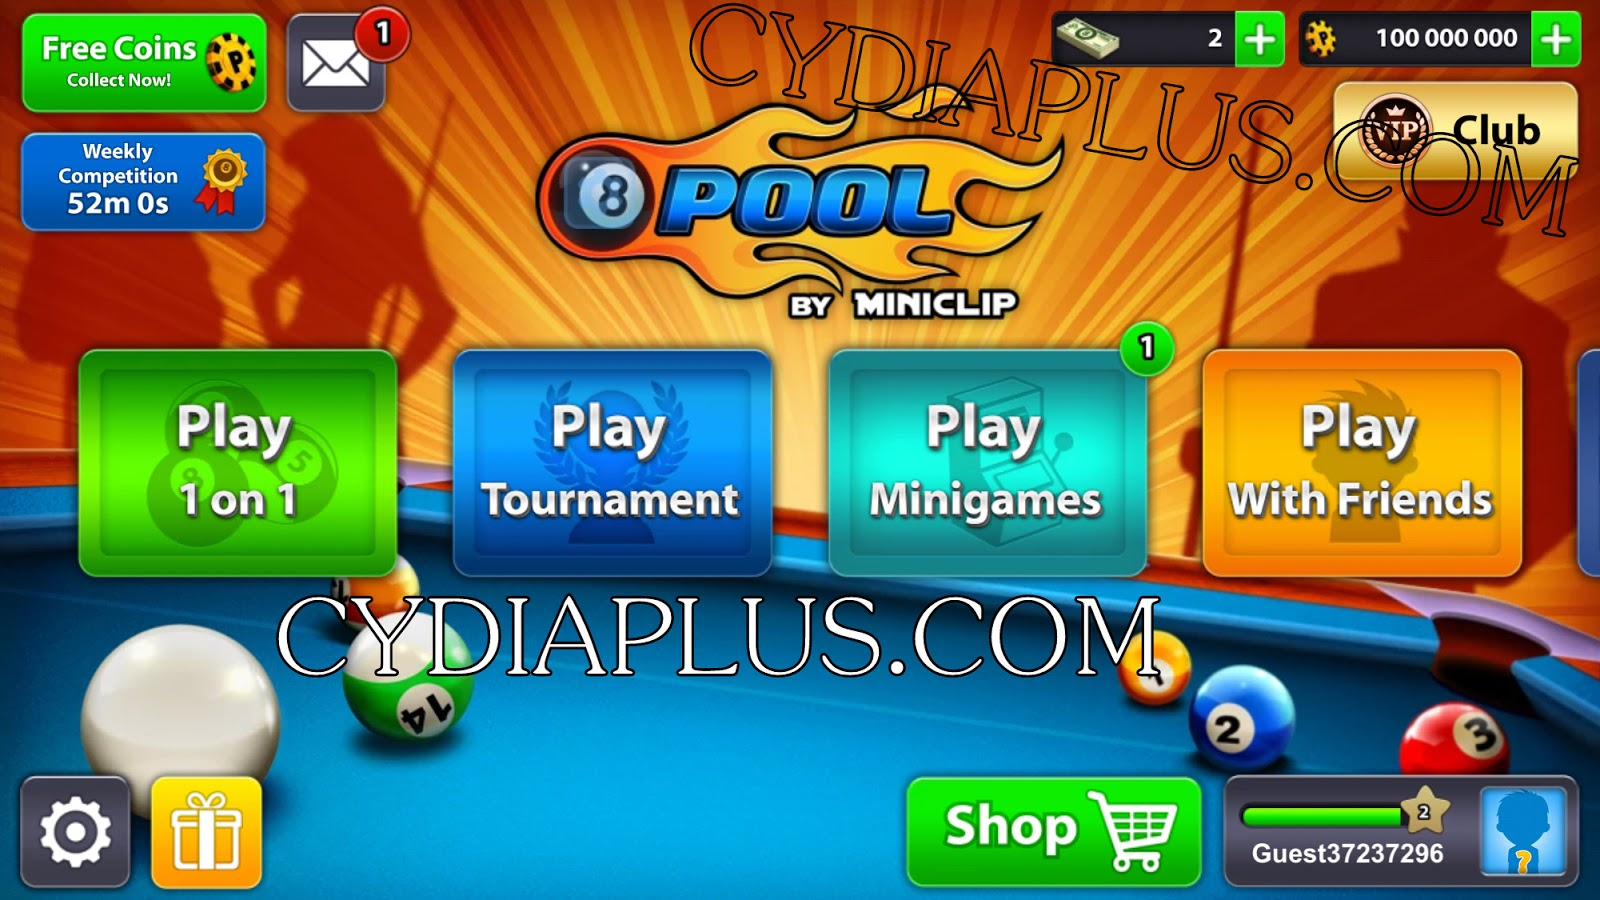 8 Ball Pool Cash Mod 8 Ball Pool Hack Ios 10 8 Ball Pool Hack 2017 Unlimited